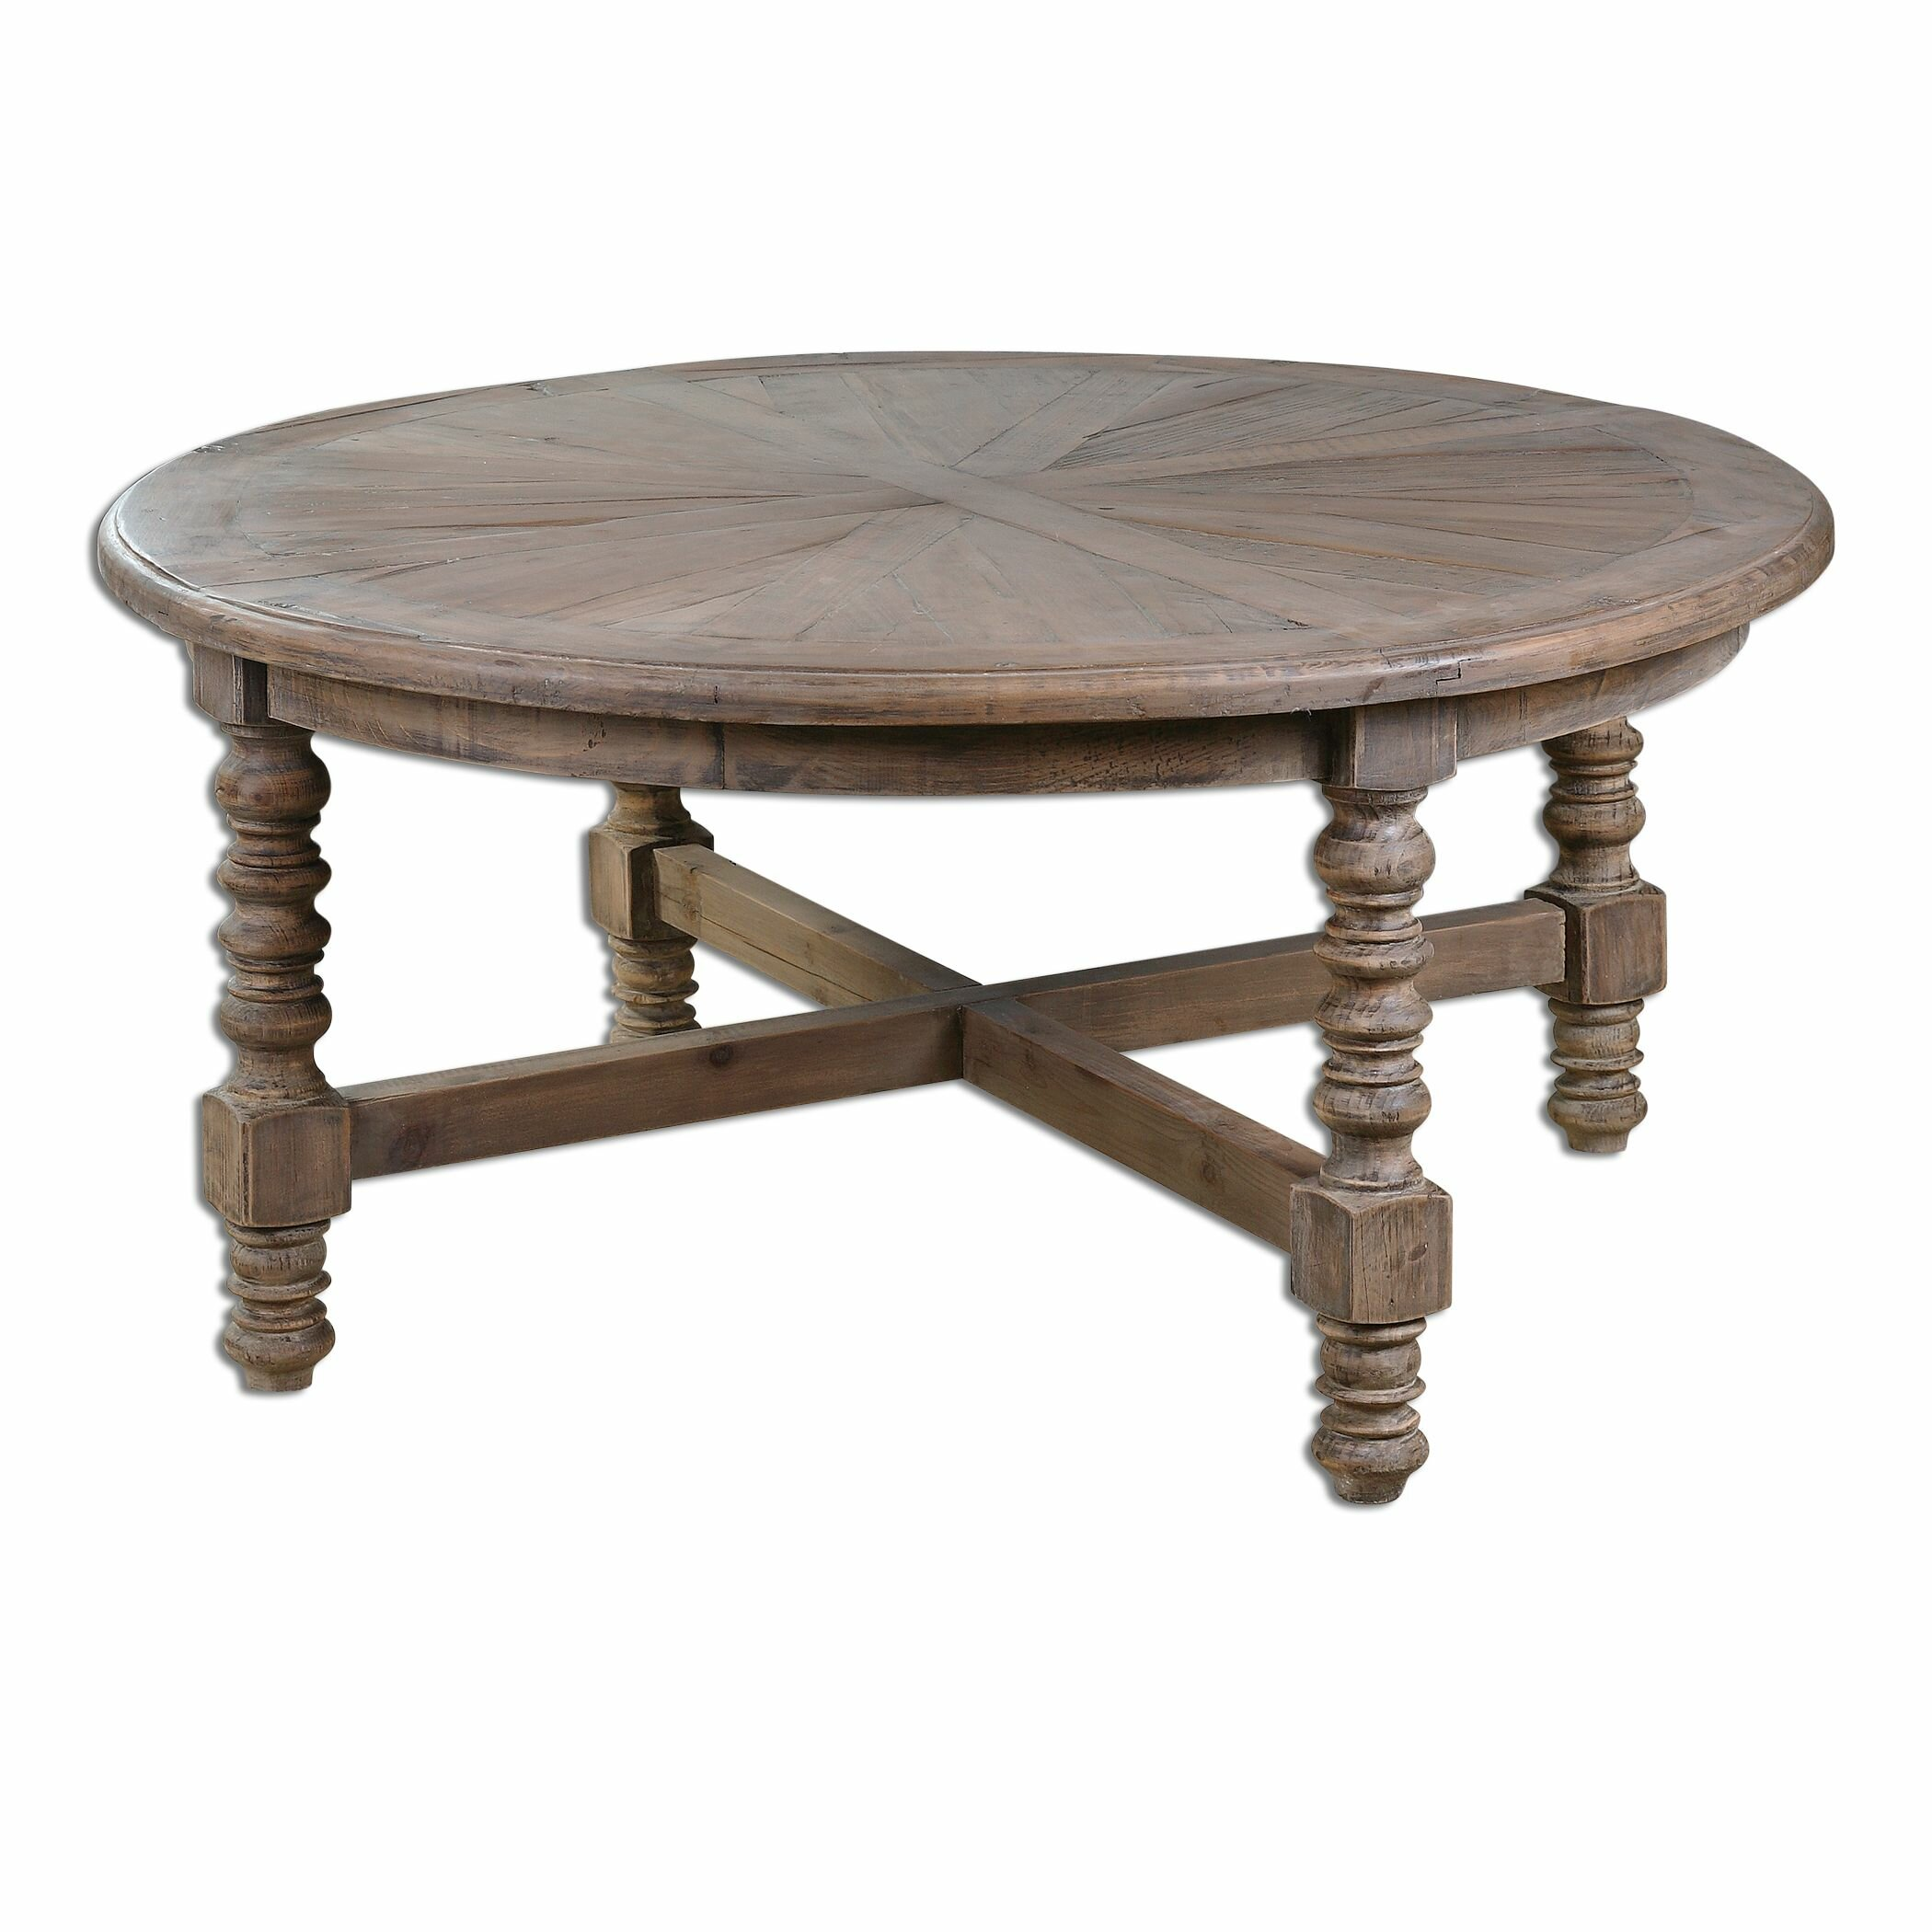 Vintage Casual Coffee Tables: Uttermost Samuelle Wooden Coffee Table & Reviews